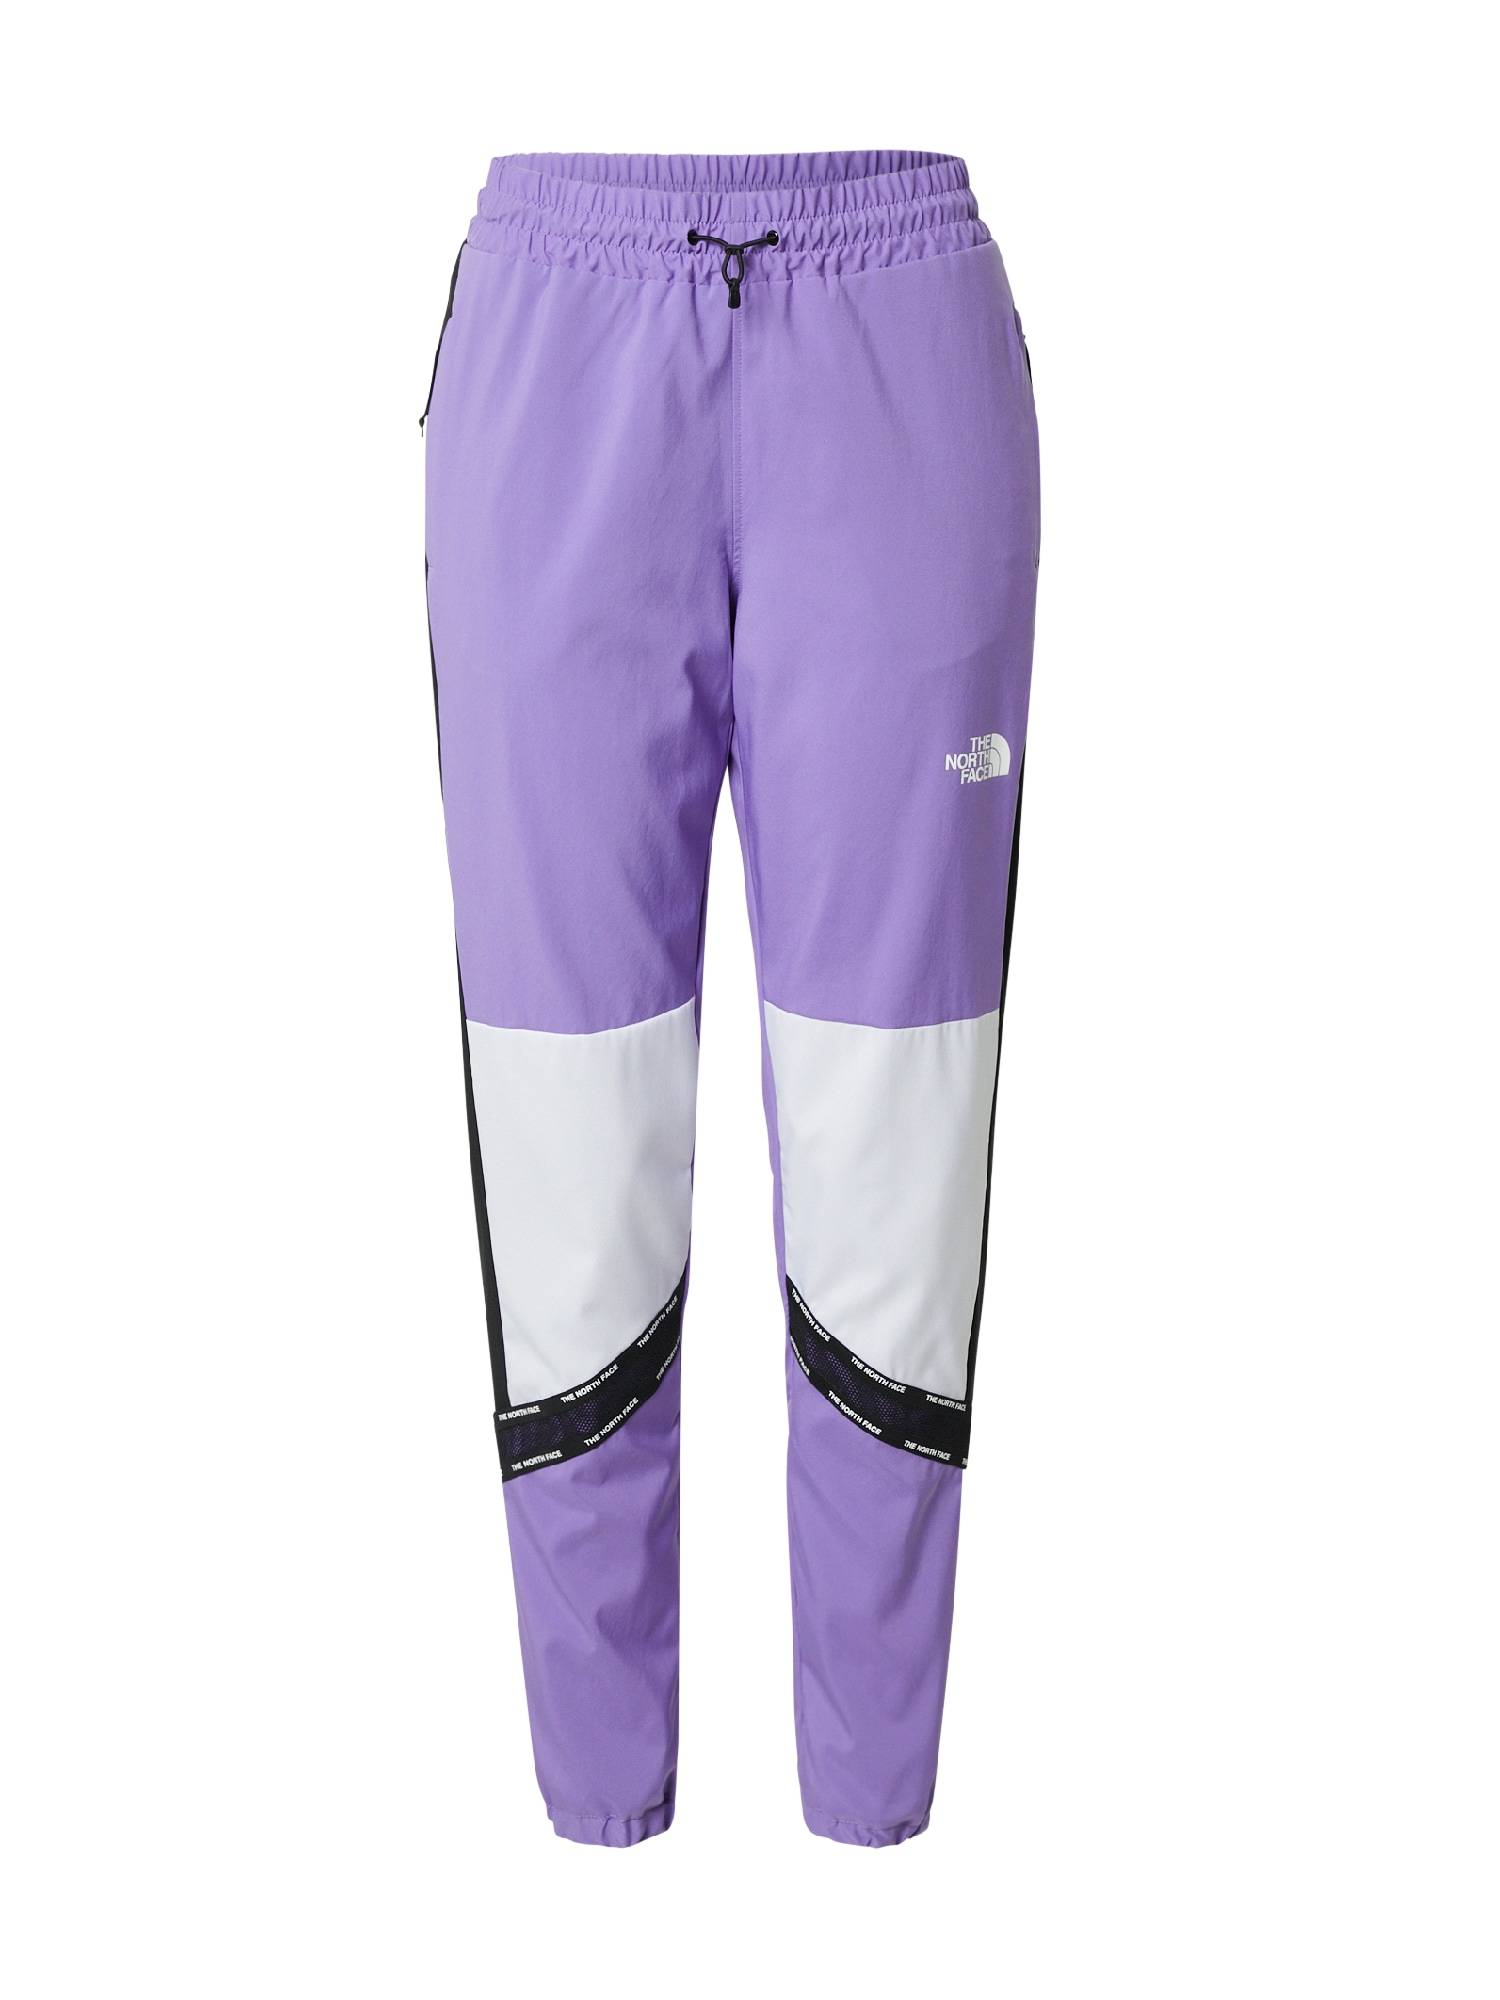 THE NORTH FACE Pantalon 'Train'  - Violet - Taille: L - female